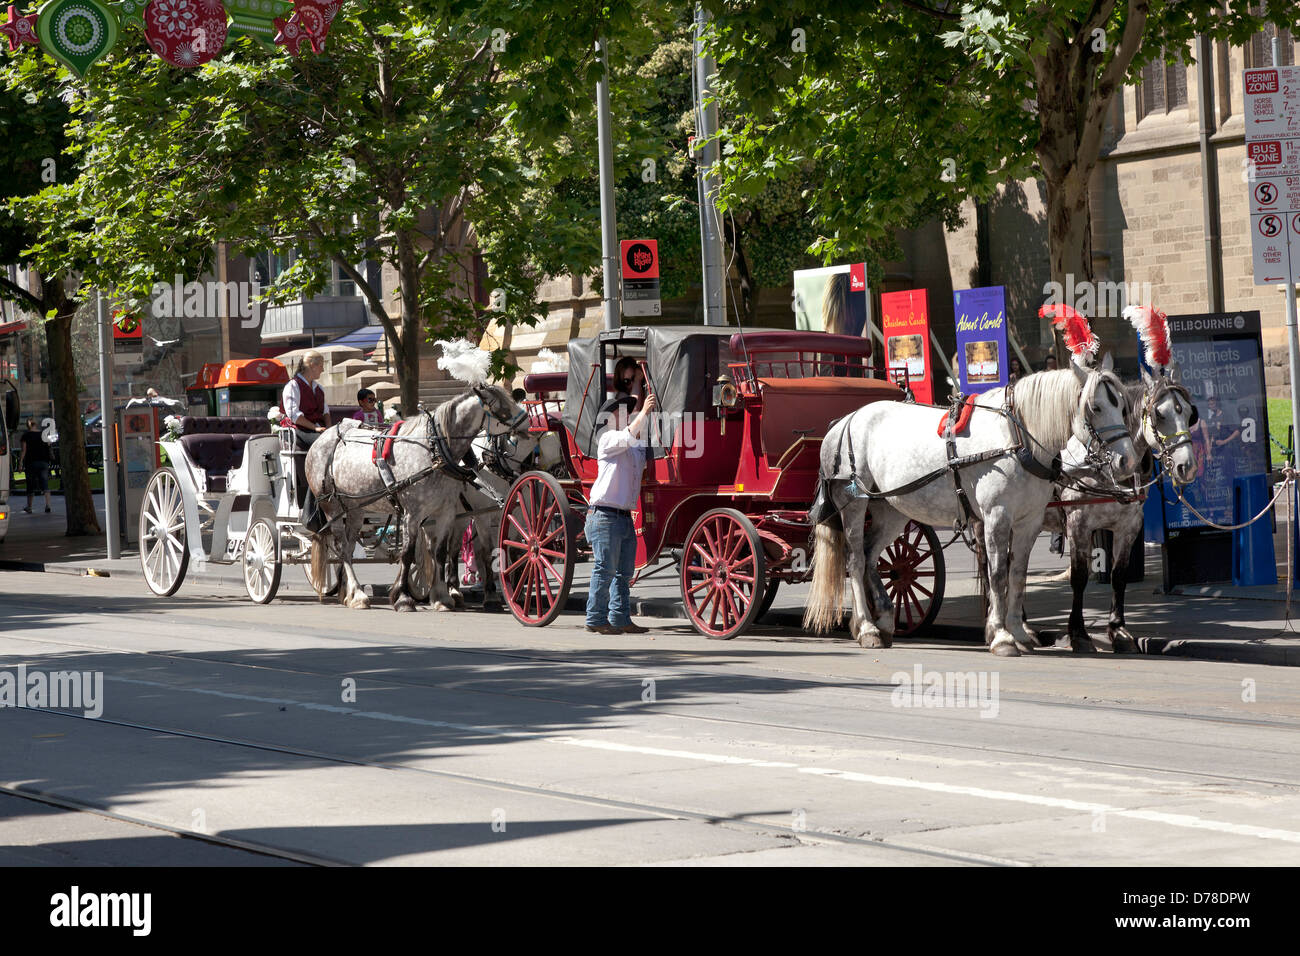 Horse drawn carriages in the streets of Melbourne,Victoria, Australia - Stock Image